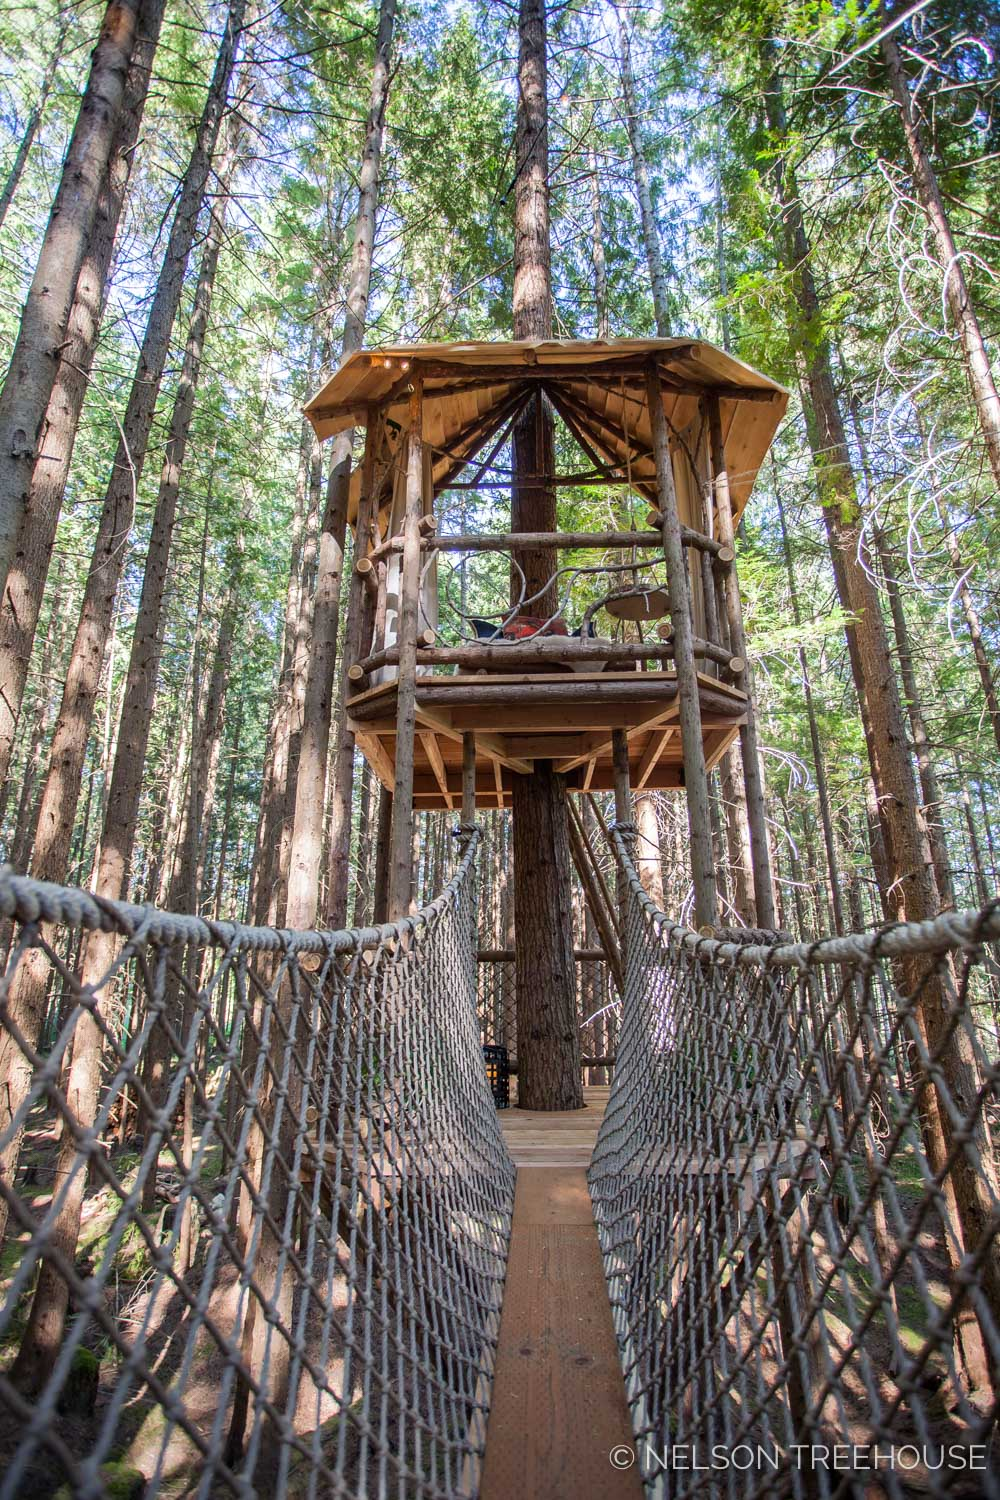 Treetop-Movie-Theater-2018-Nelson-Treehouse-659.jpg